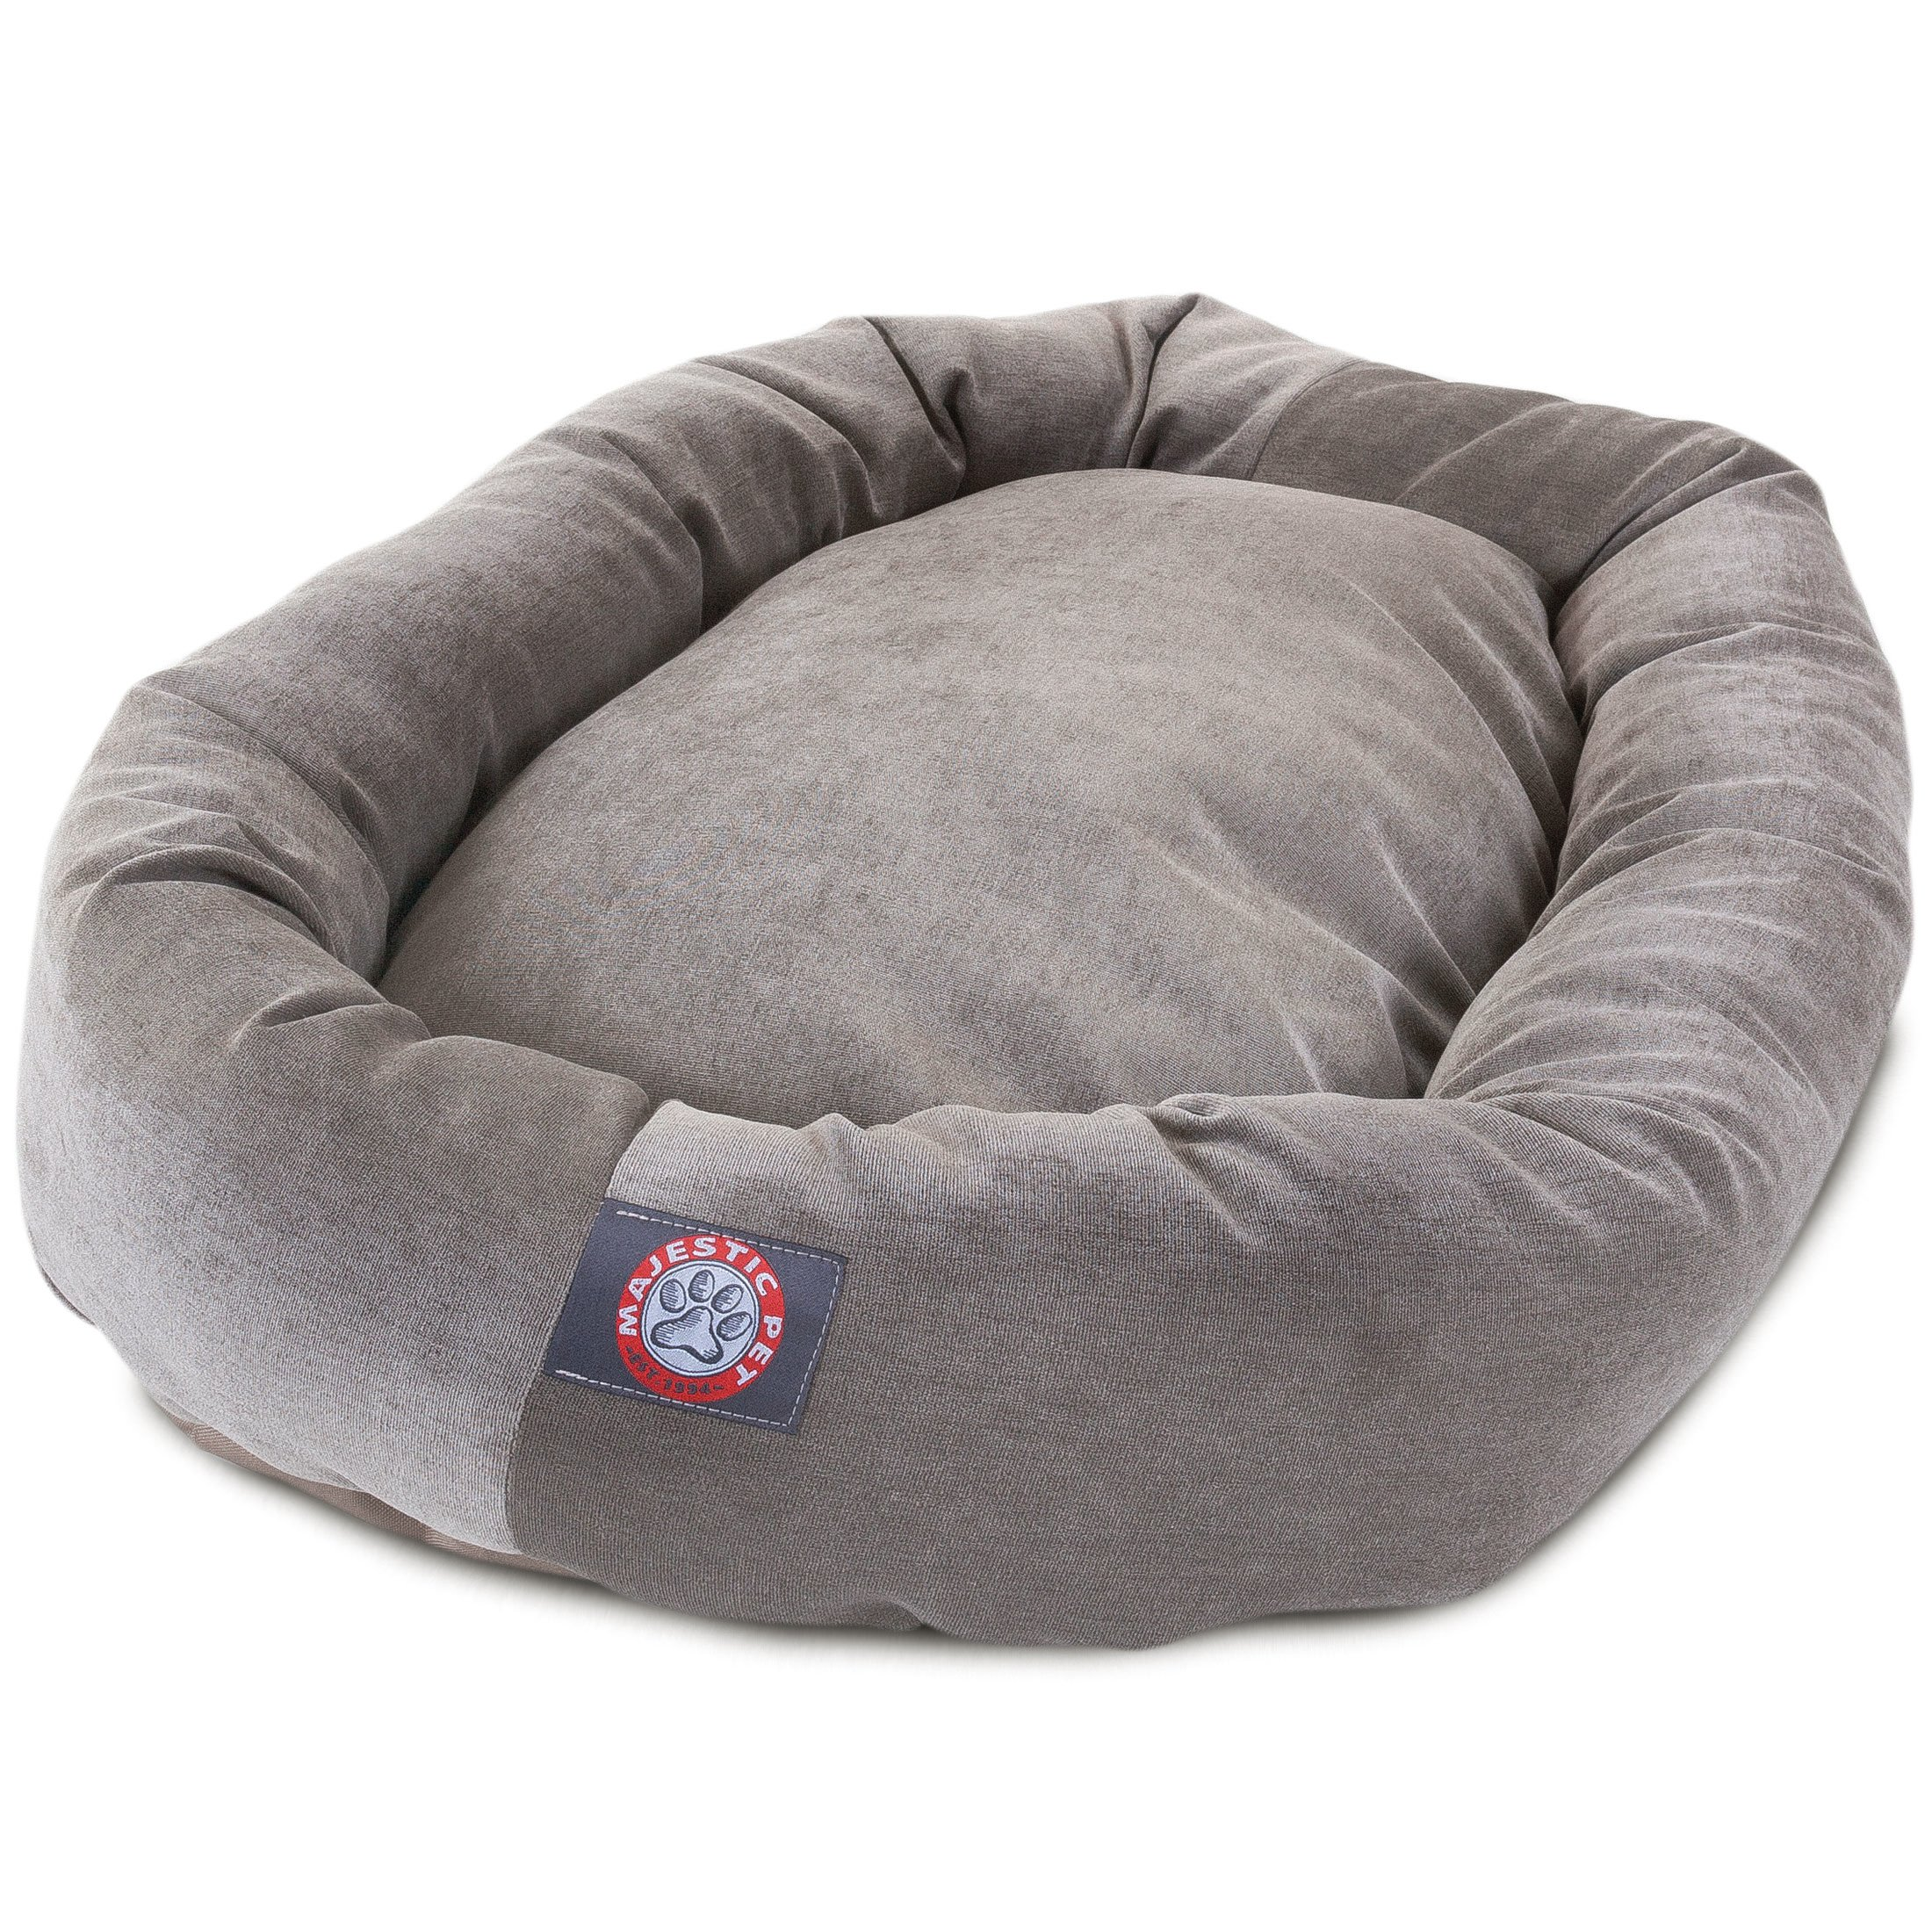 52 inch Vintage Villa Collection Micro Velvet Bagel Dog Bed By Majestic Pet Products by Majestic Pet (Image #2)